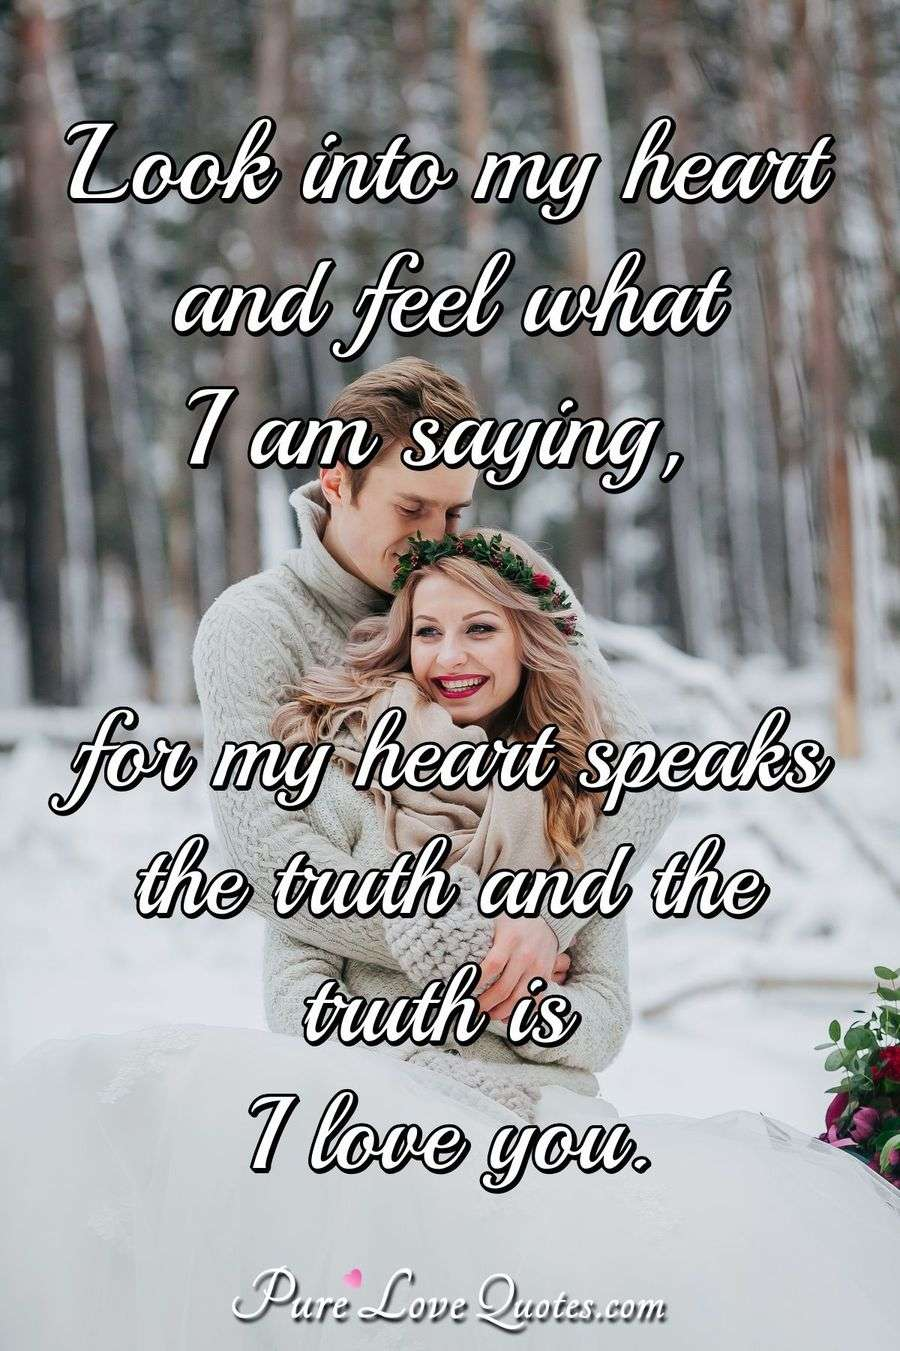 Look into my heart and feel what I am saying, for my heart speaks the truth and the truth is I love you.